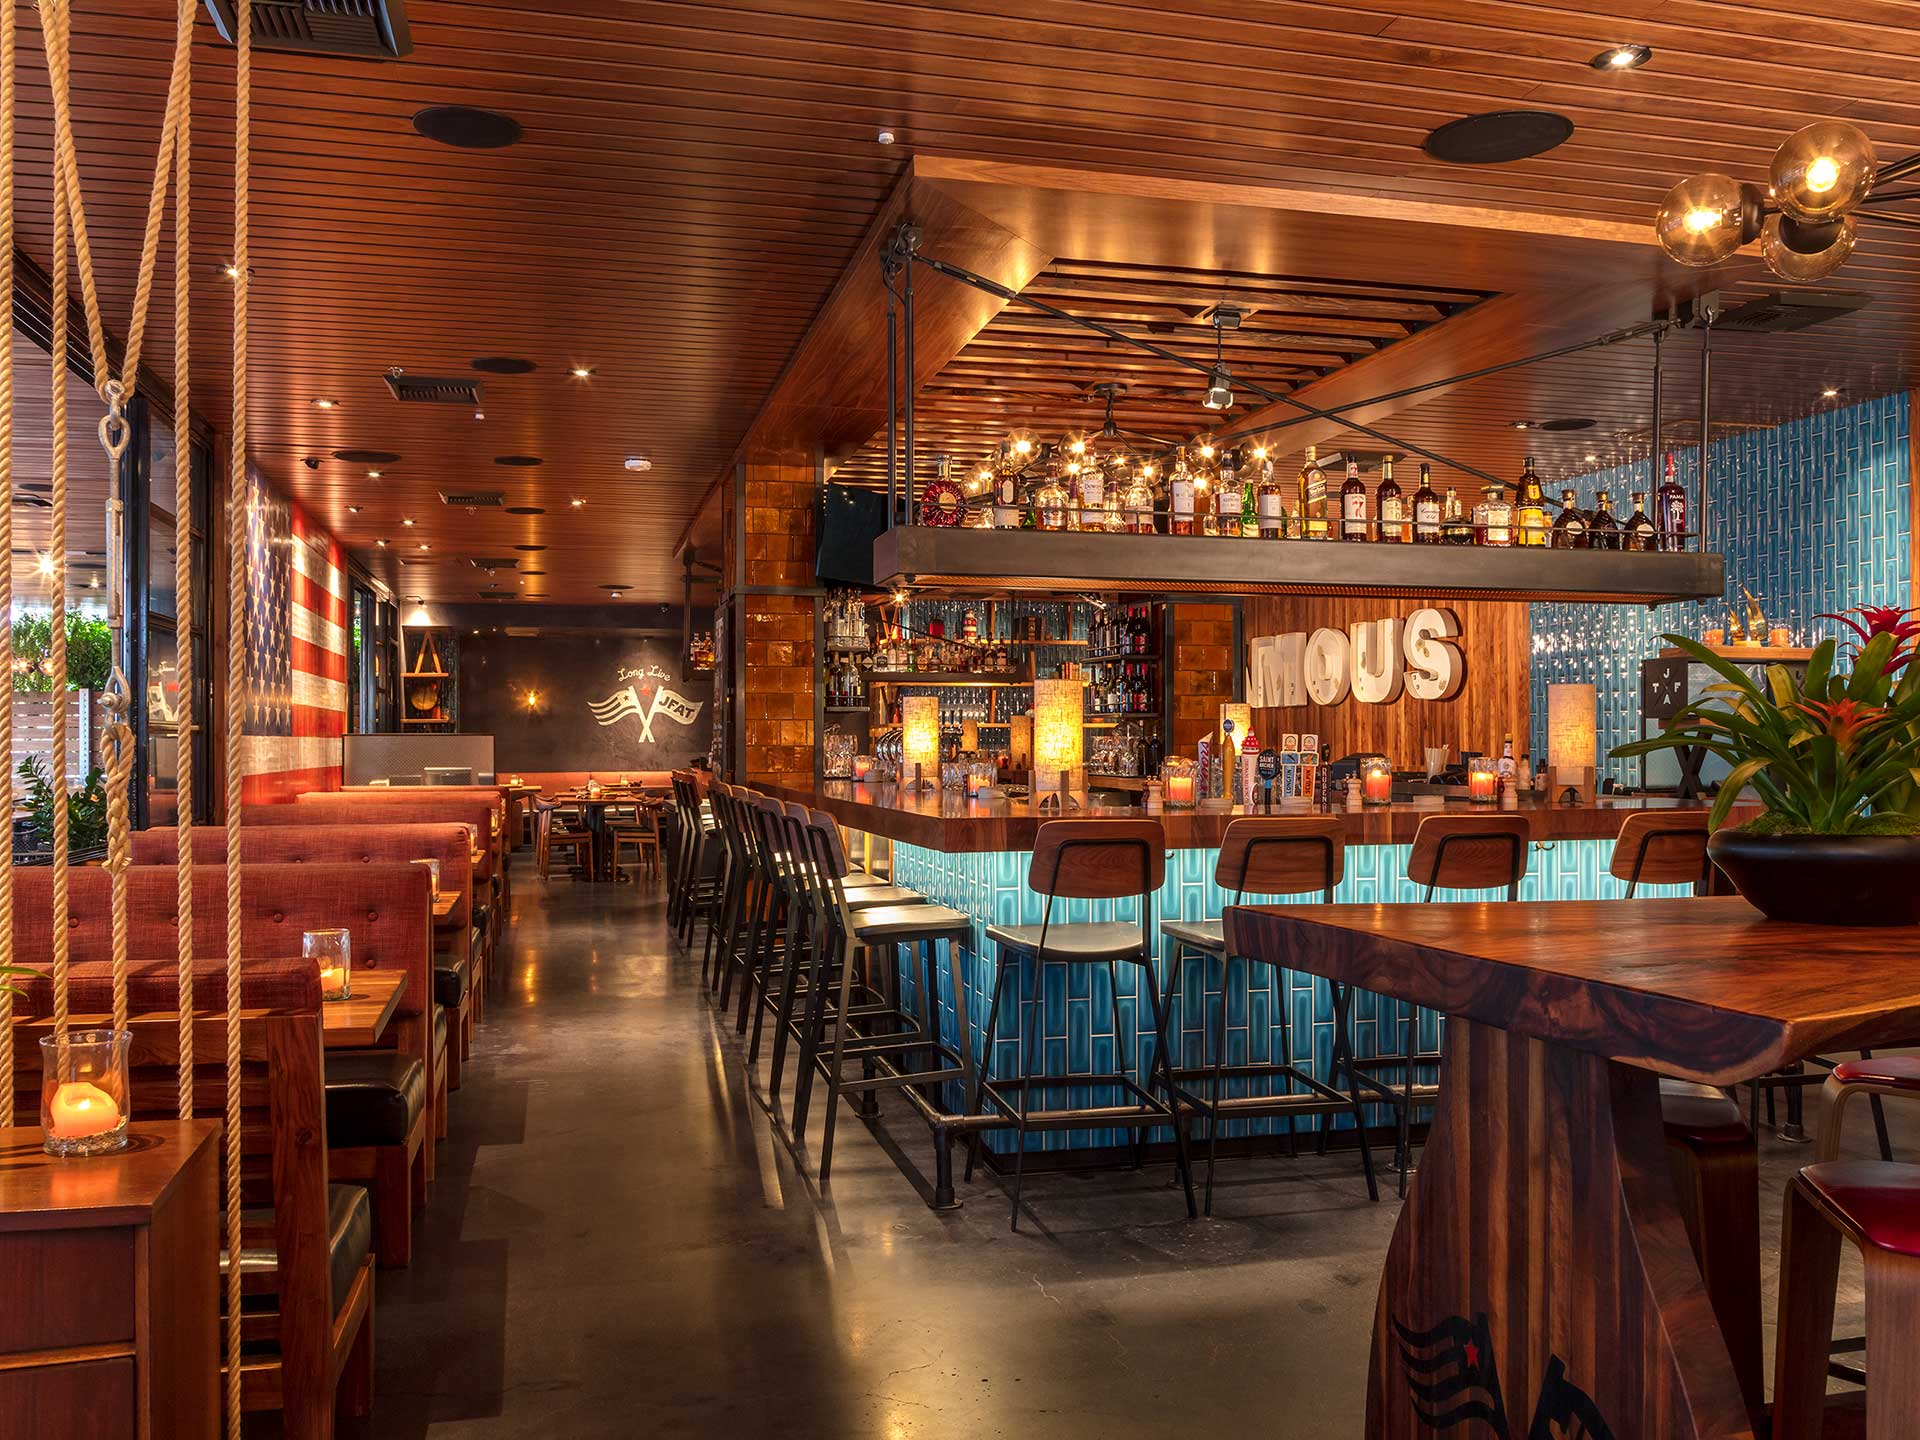 Jimmy's Santa Monica offers a hip bar and dining room experience